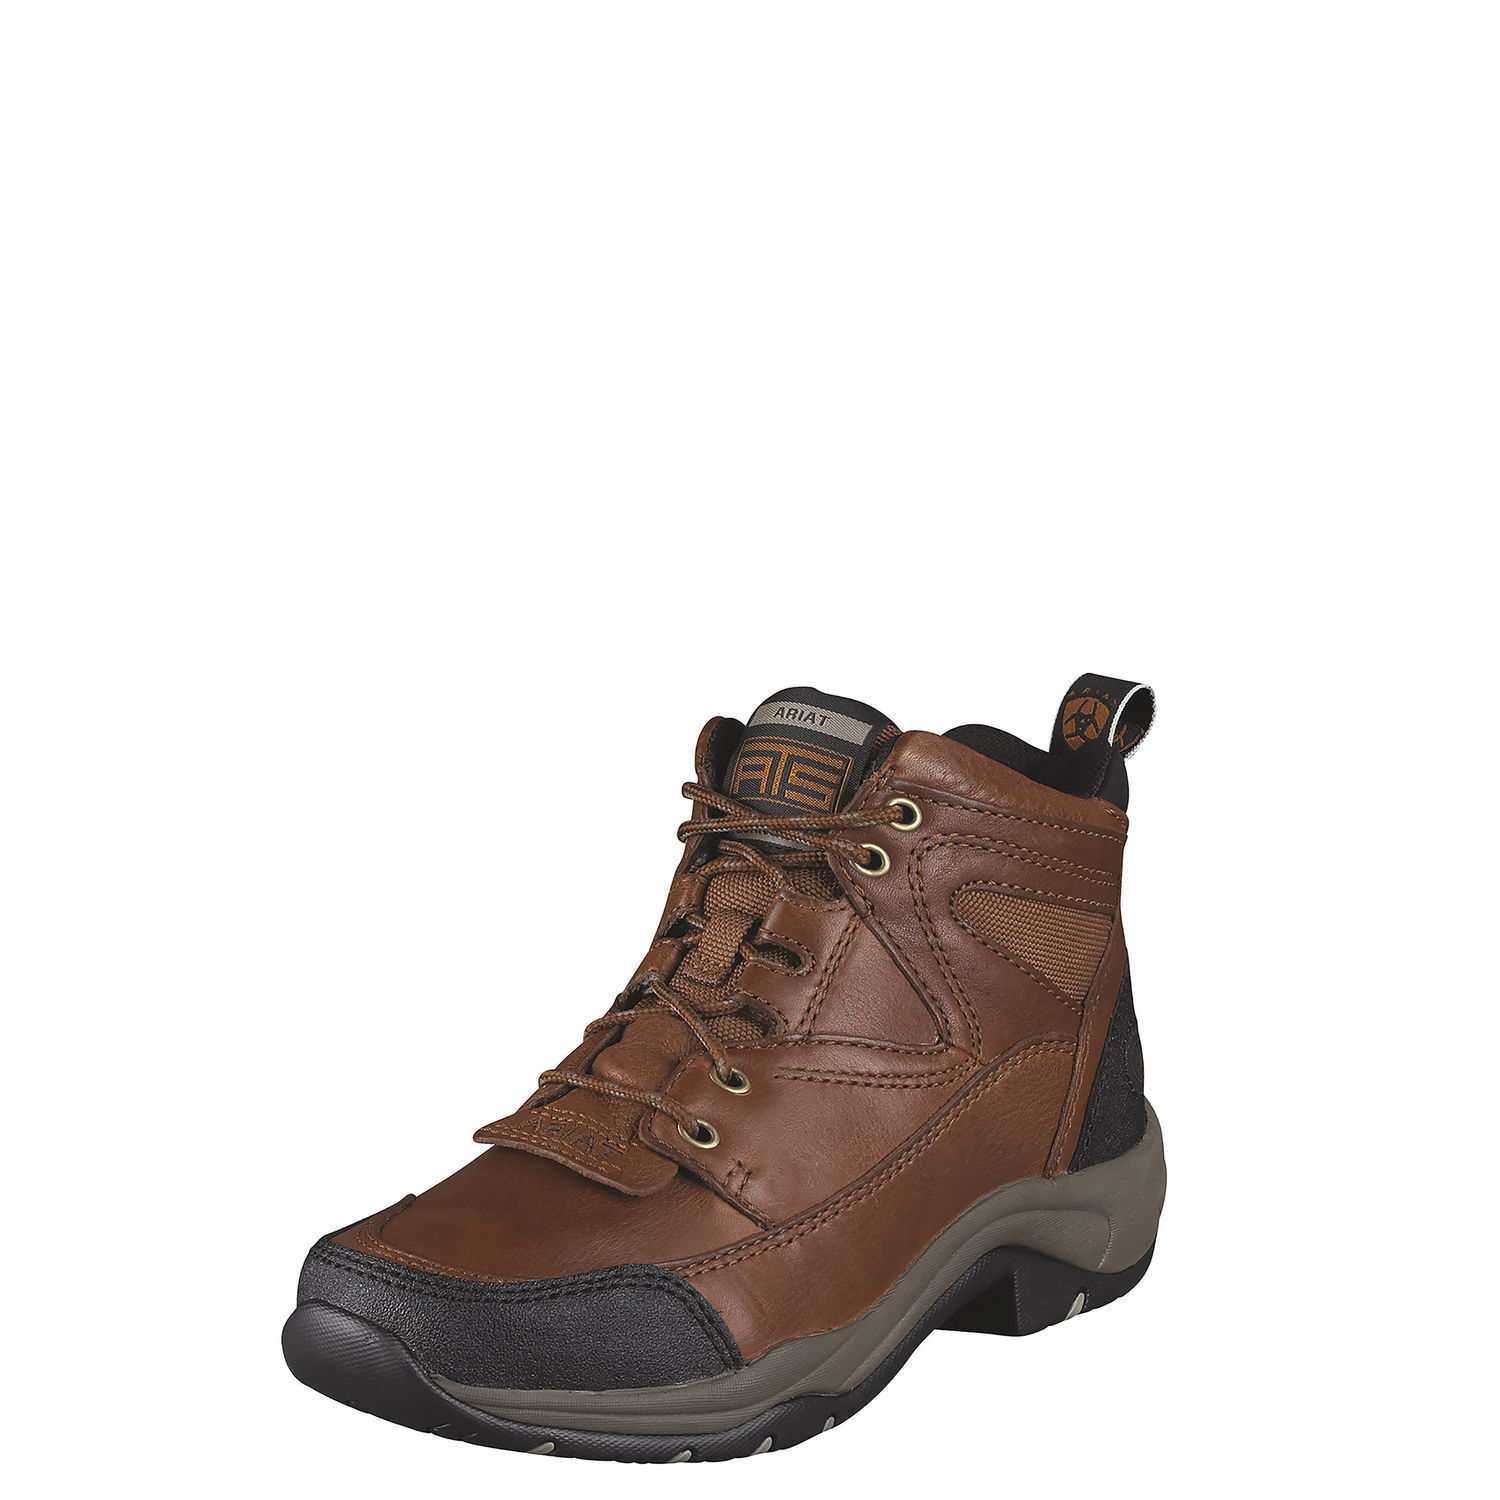 Ariat 10004139 Terrain Full Grain Leather Outdoor Hiking Lacer Work stivali